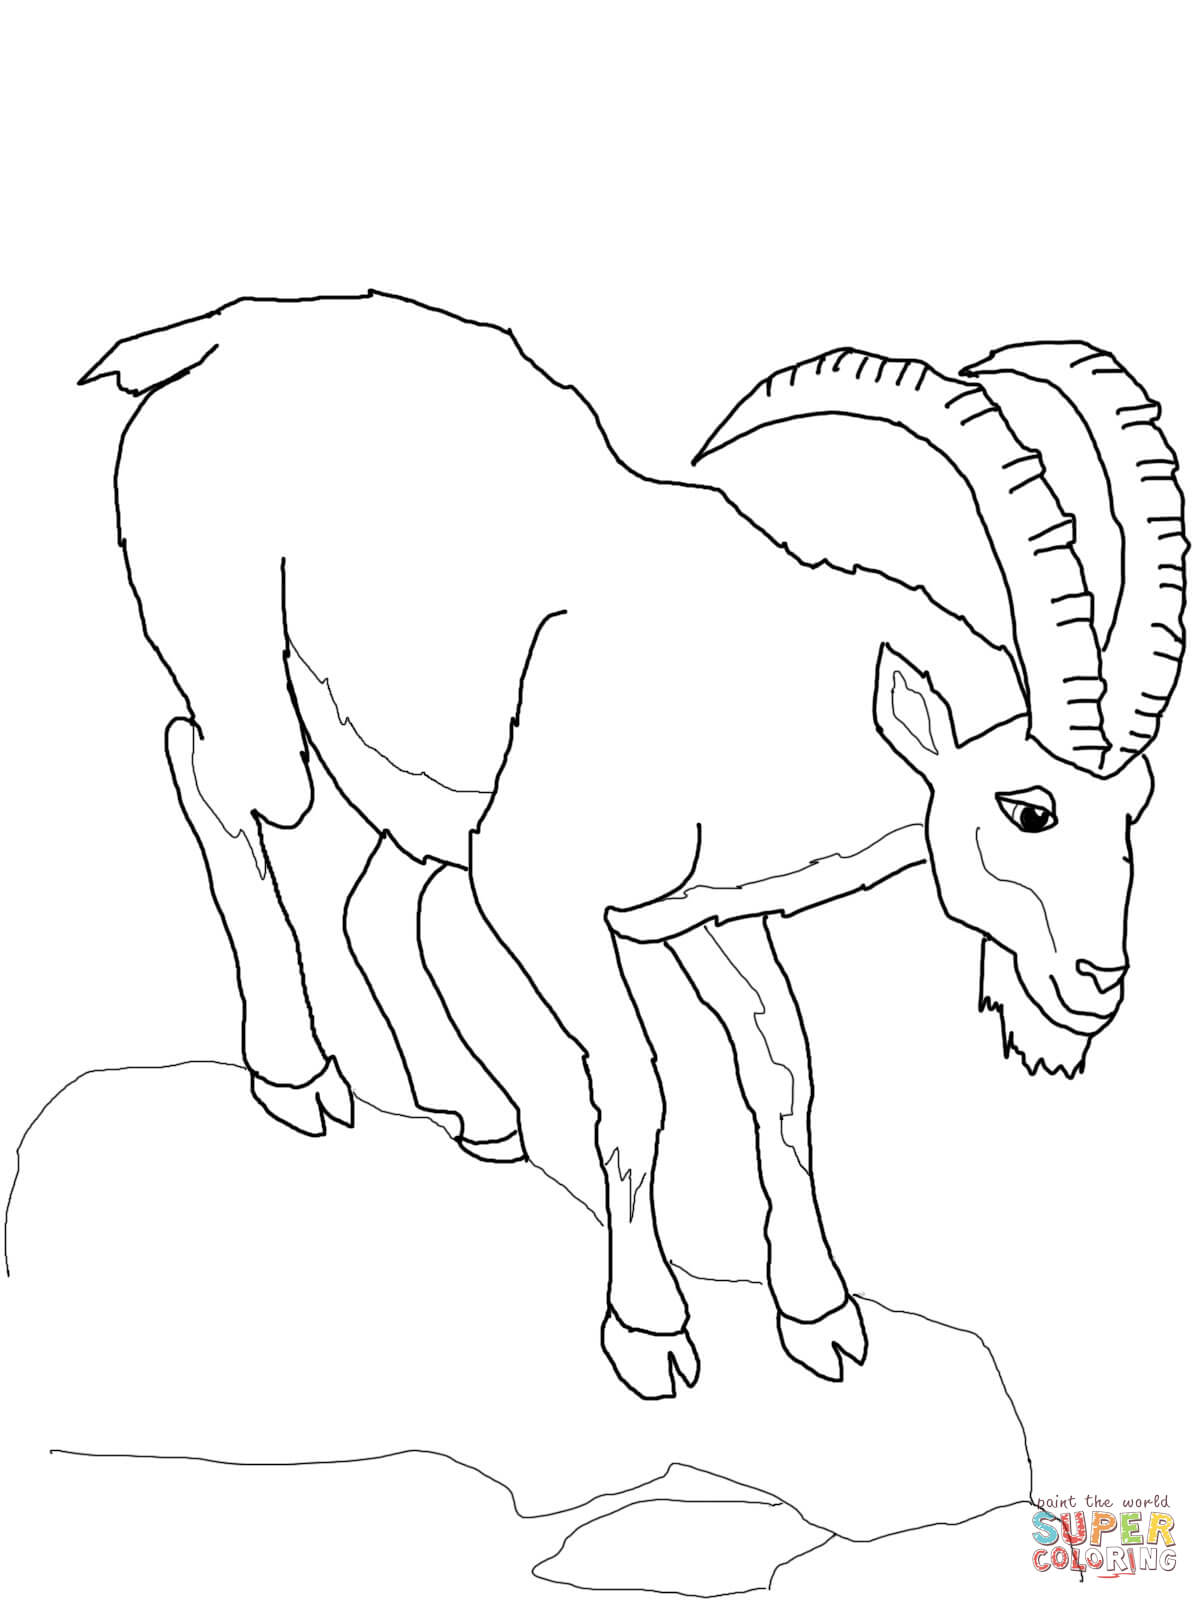 Ibex Coloring Page